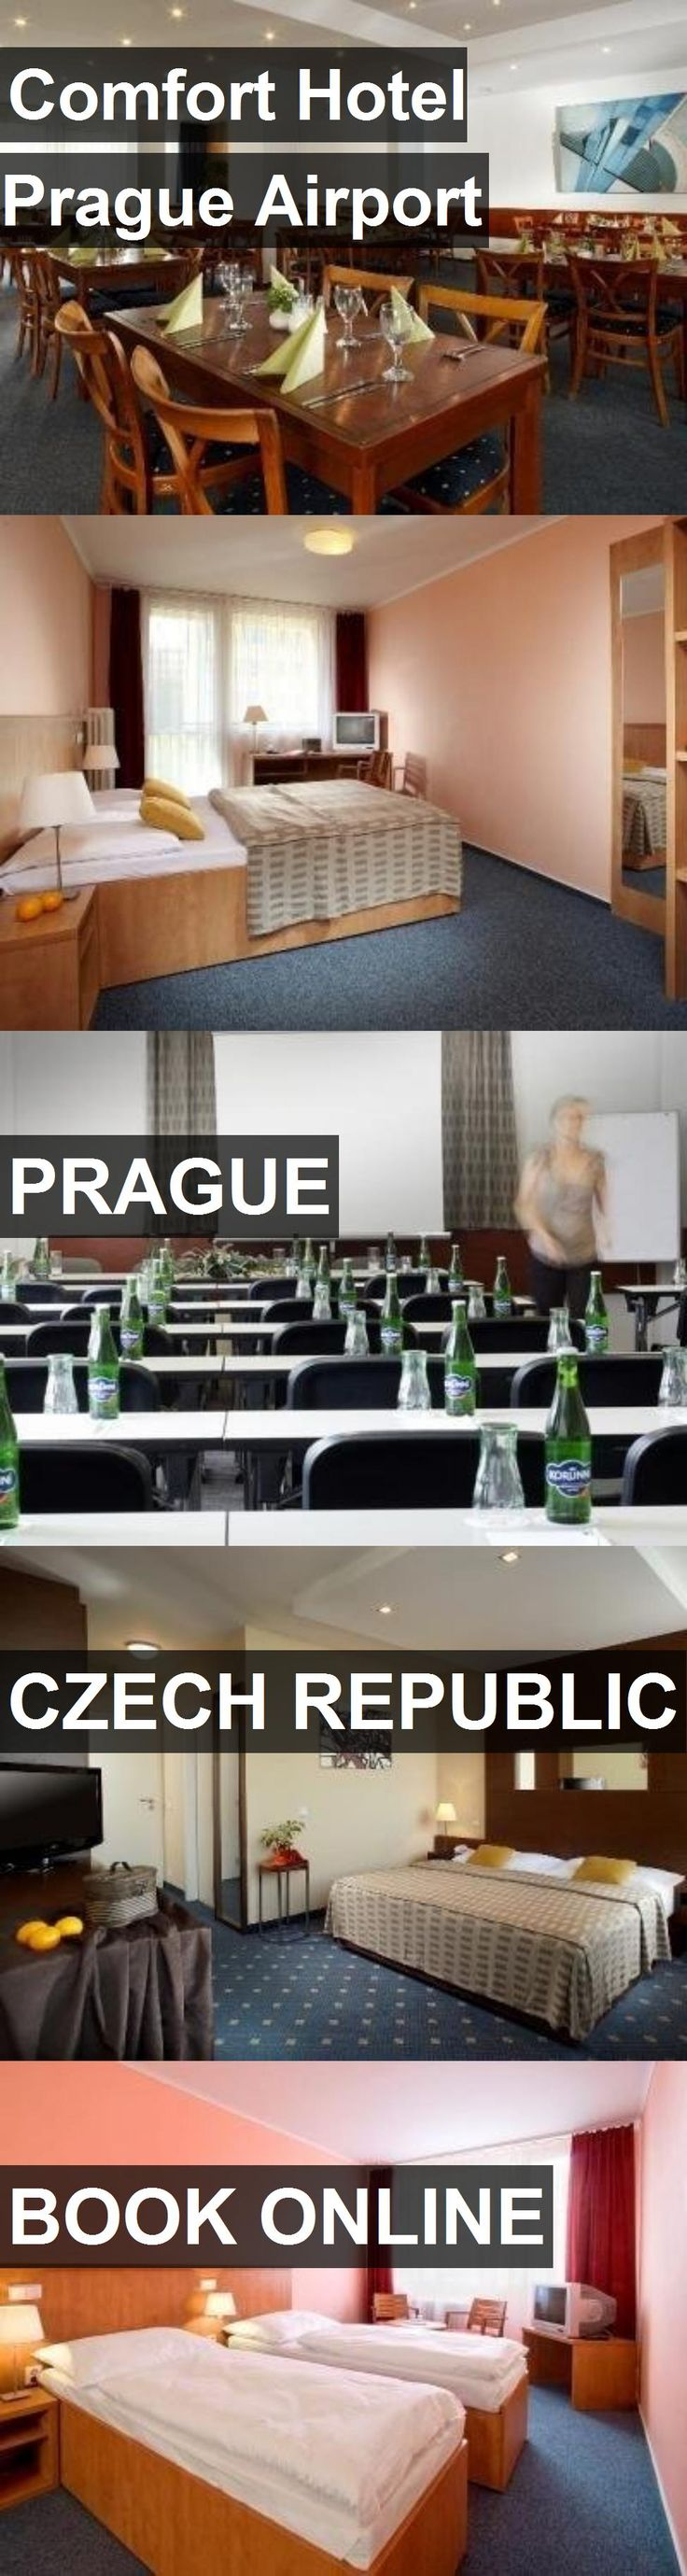 Hotel Comfort Hotel Prague Airport in Prague, Czech Republic. For more information, photos, reviews and best prices please follow the link. #CzechRepublic #Prague #ComfortHotelPragueAirport #hotel #travel #vacation